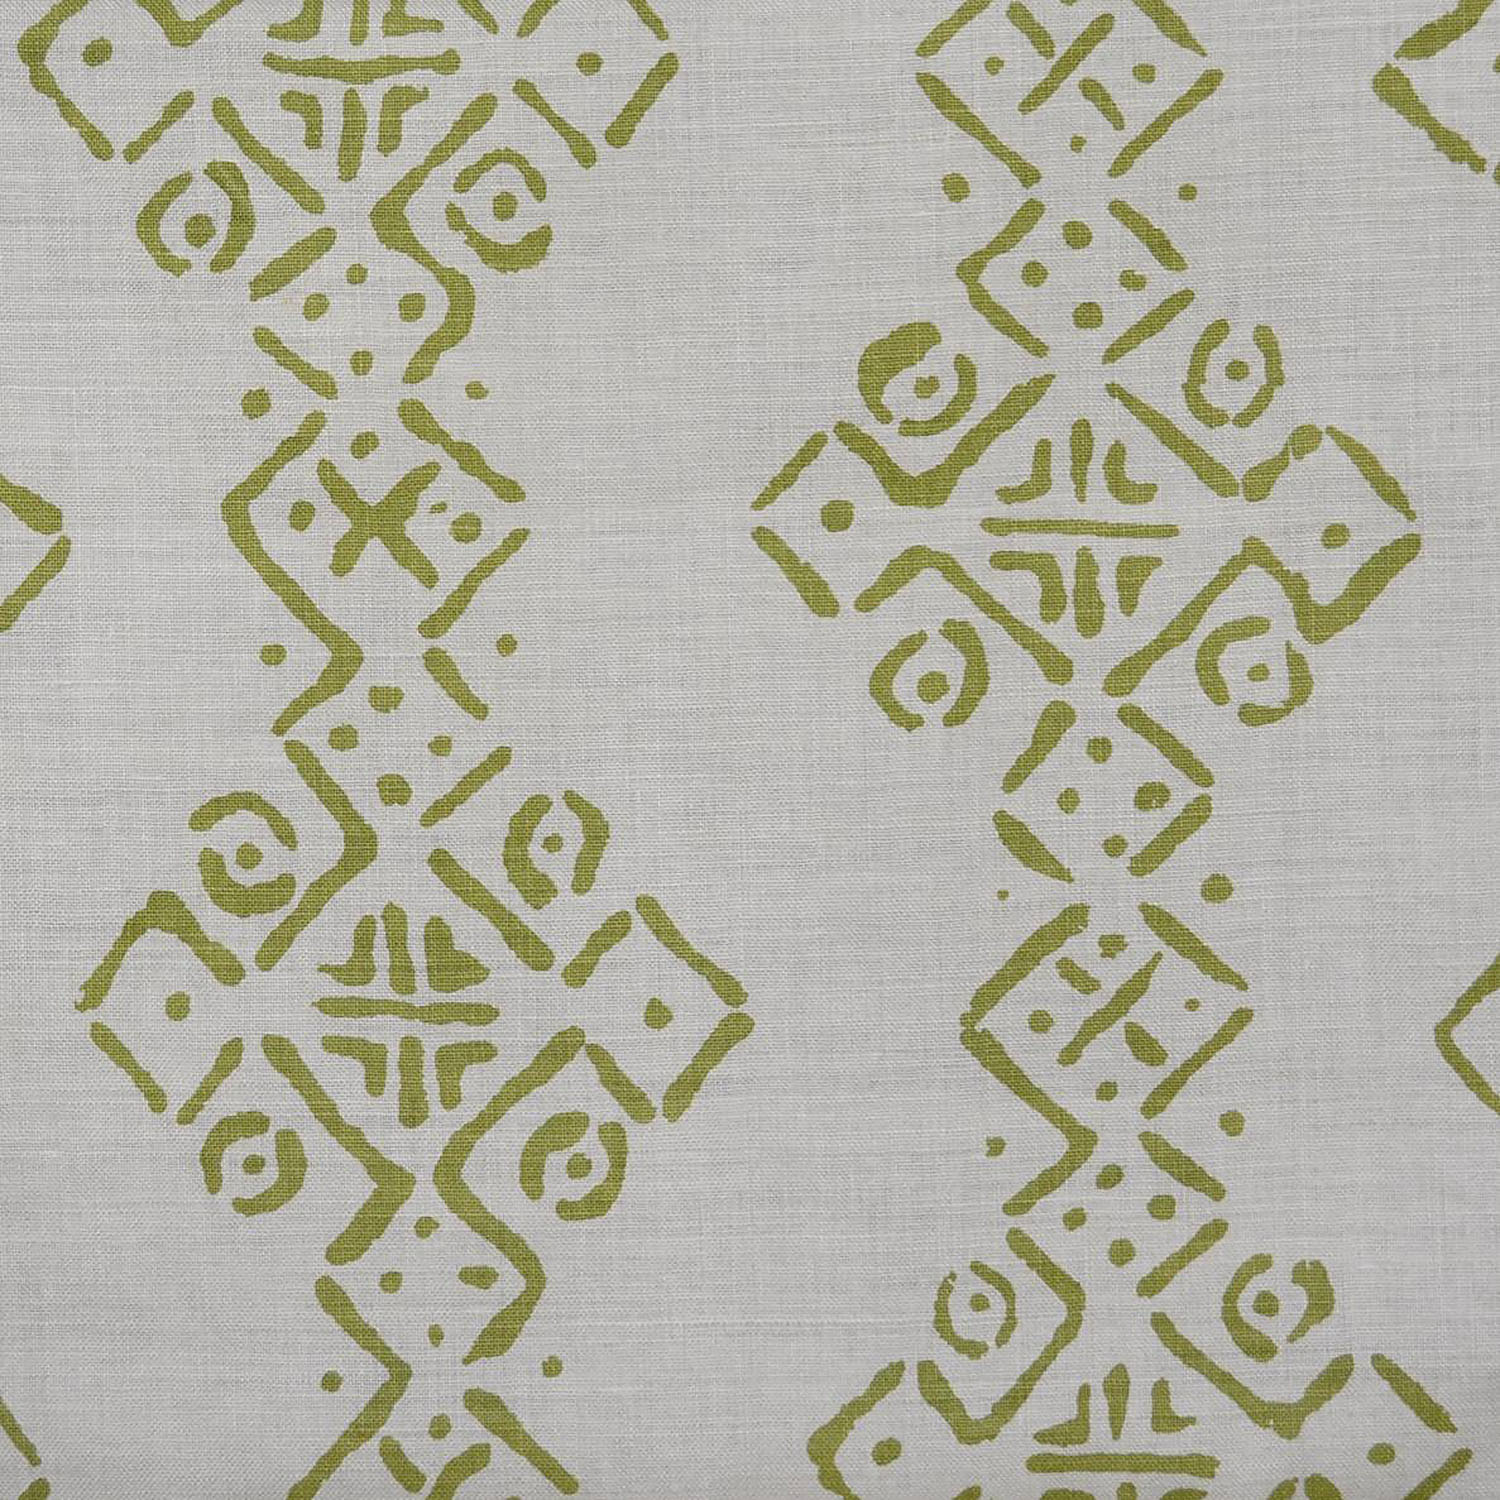 <p><strong>MALI</strong>7540-00<a href=/custom-print-collection/mali-7540-00>More →</a></p>